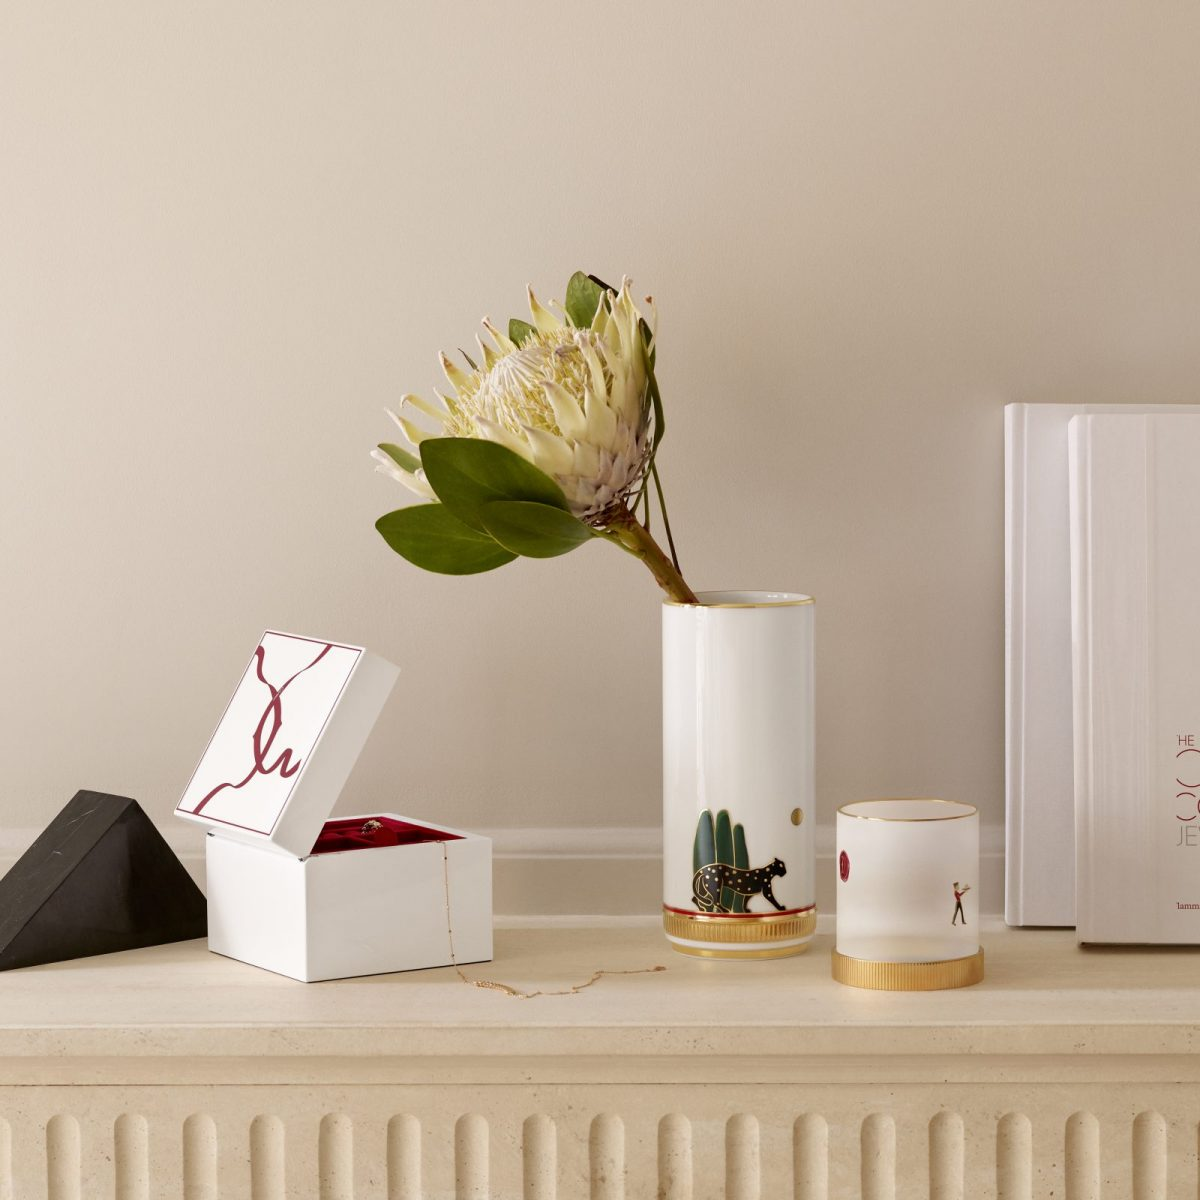 Just in time for Christmas, four new collections of covetable Cartier objets 2